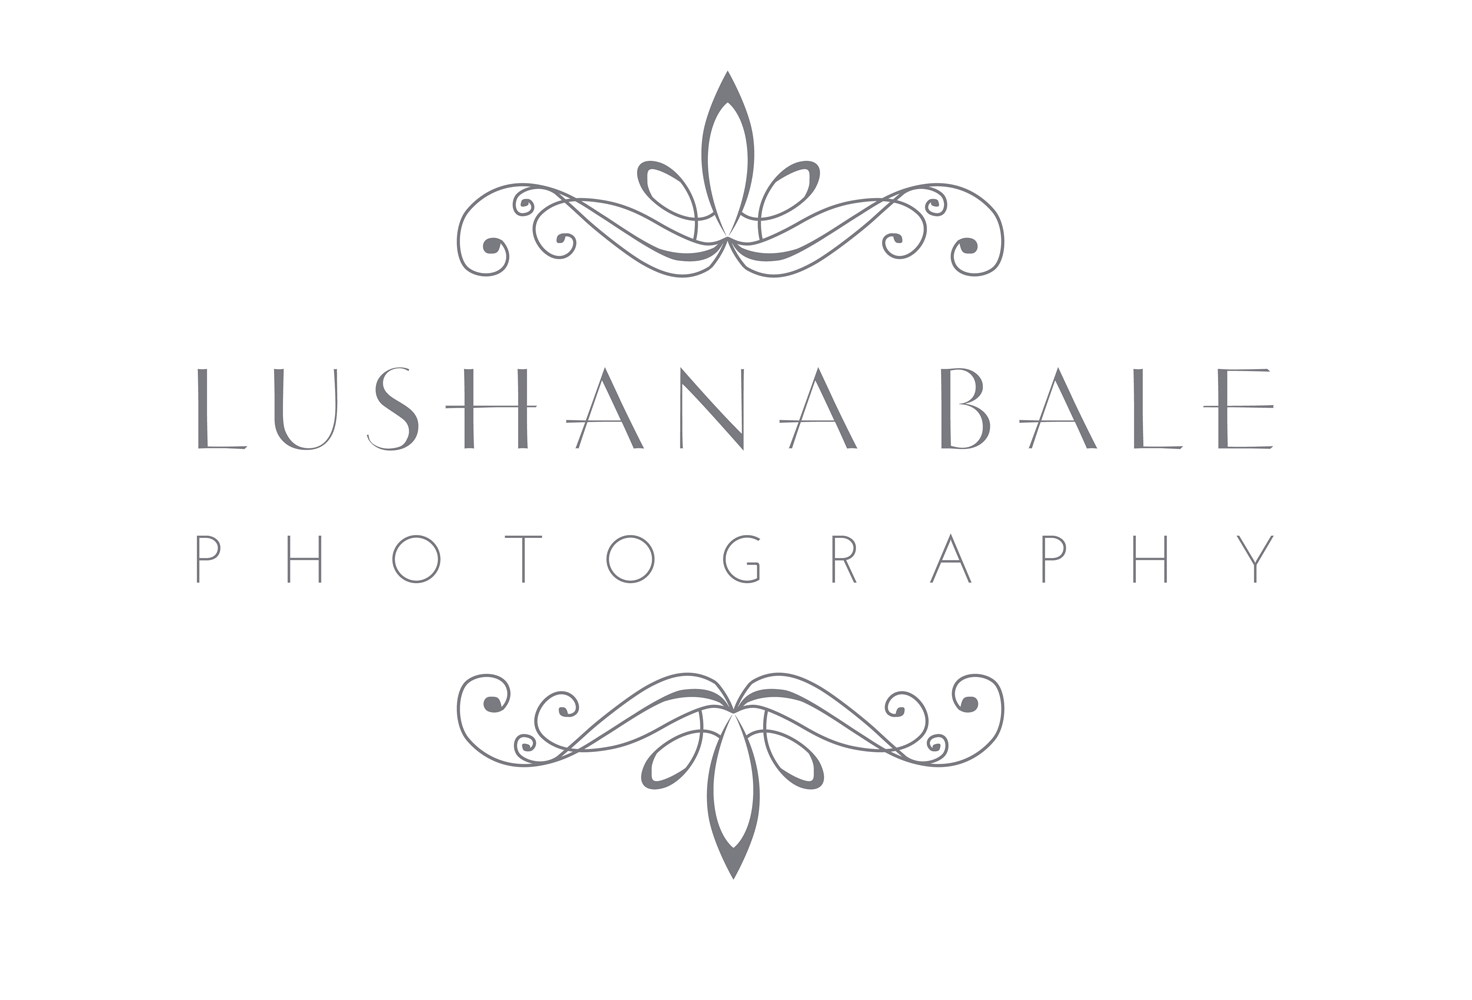 Toronto Wedding Photographer / Lushana Bale Photography